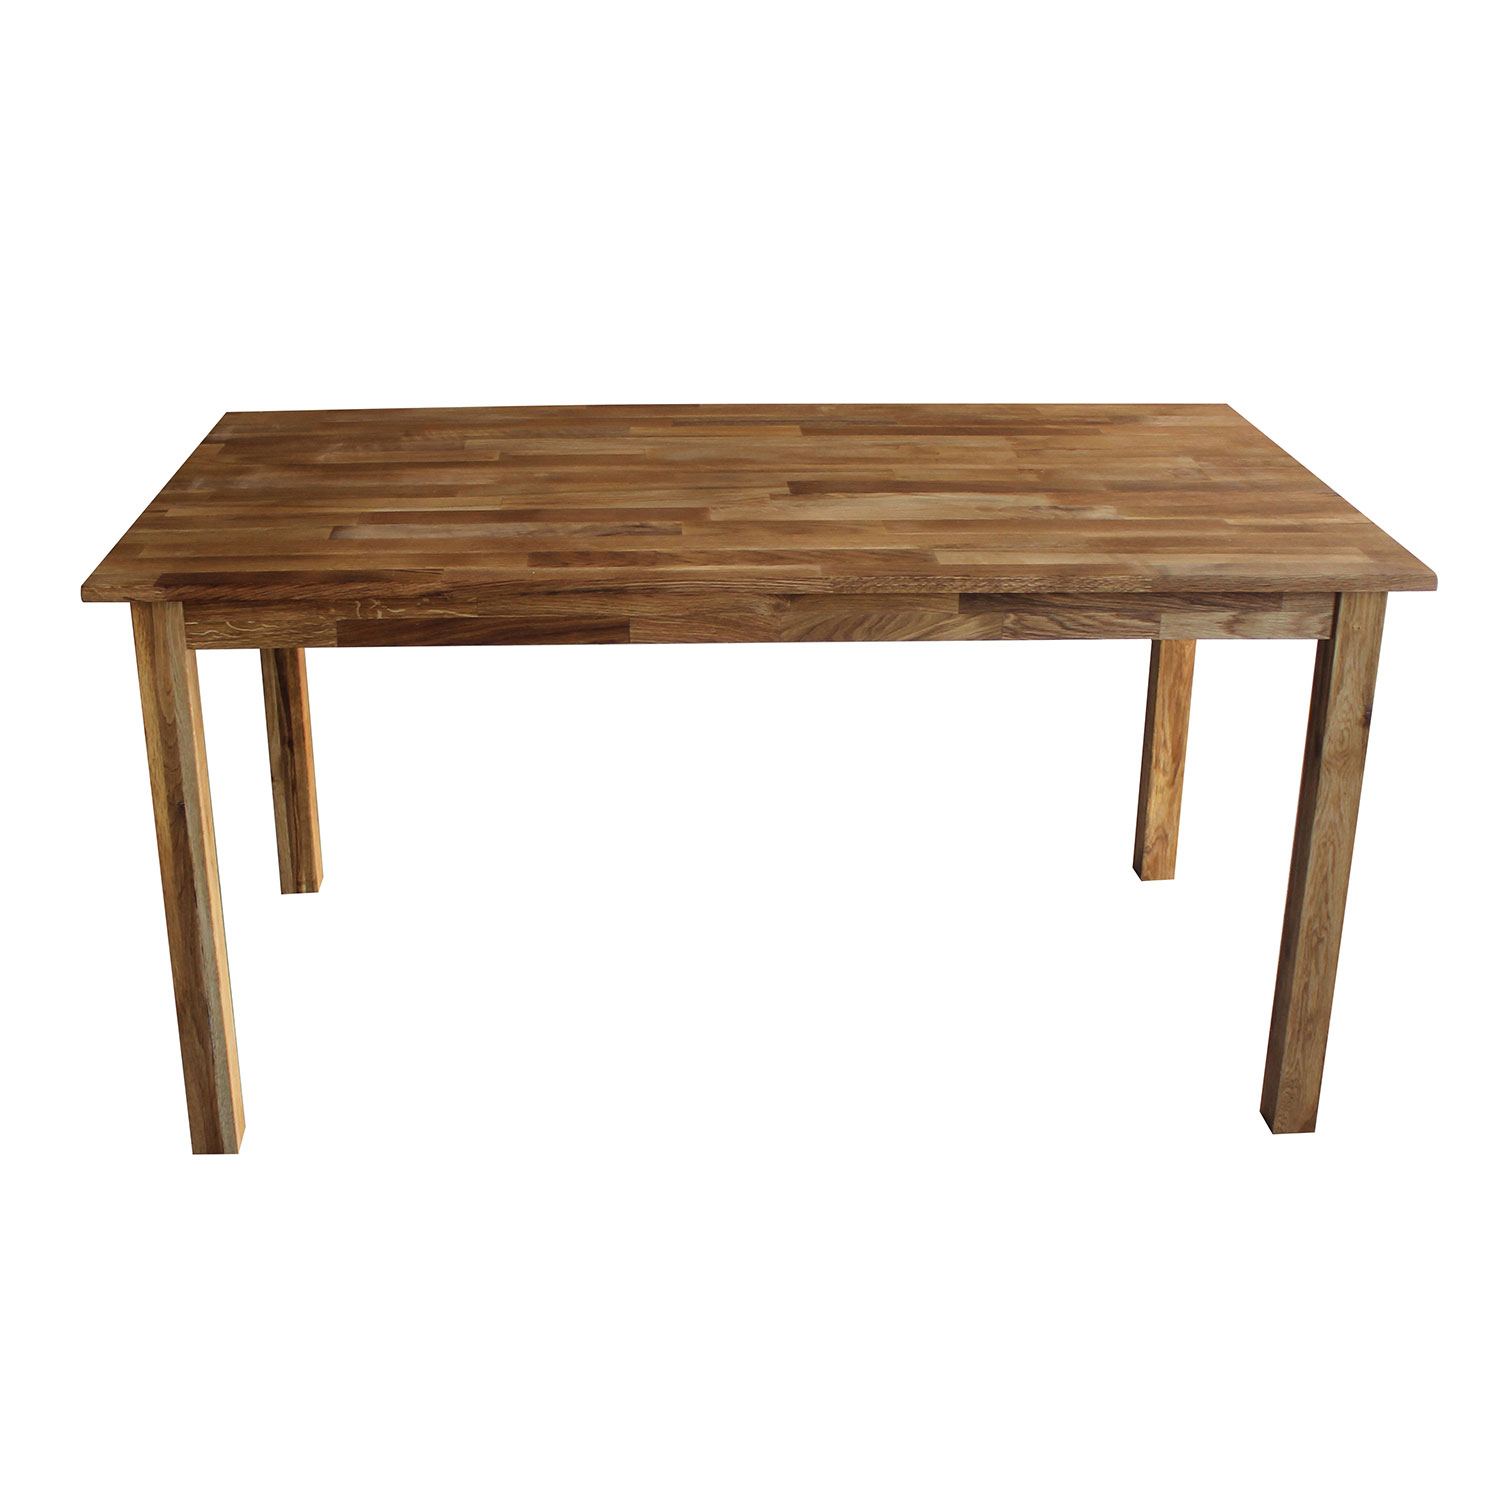 Charles bentley solid oak seater wooden dining table